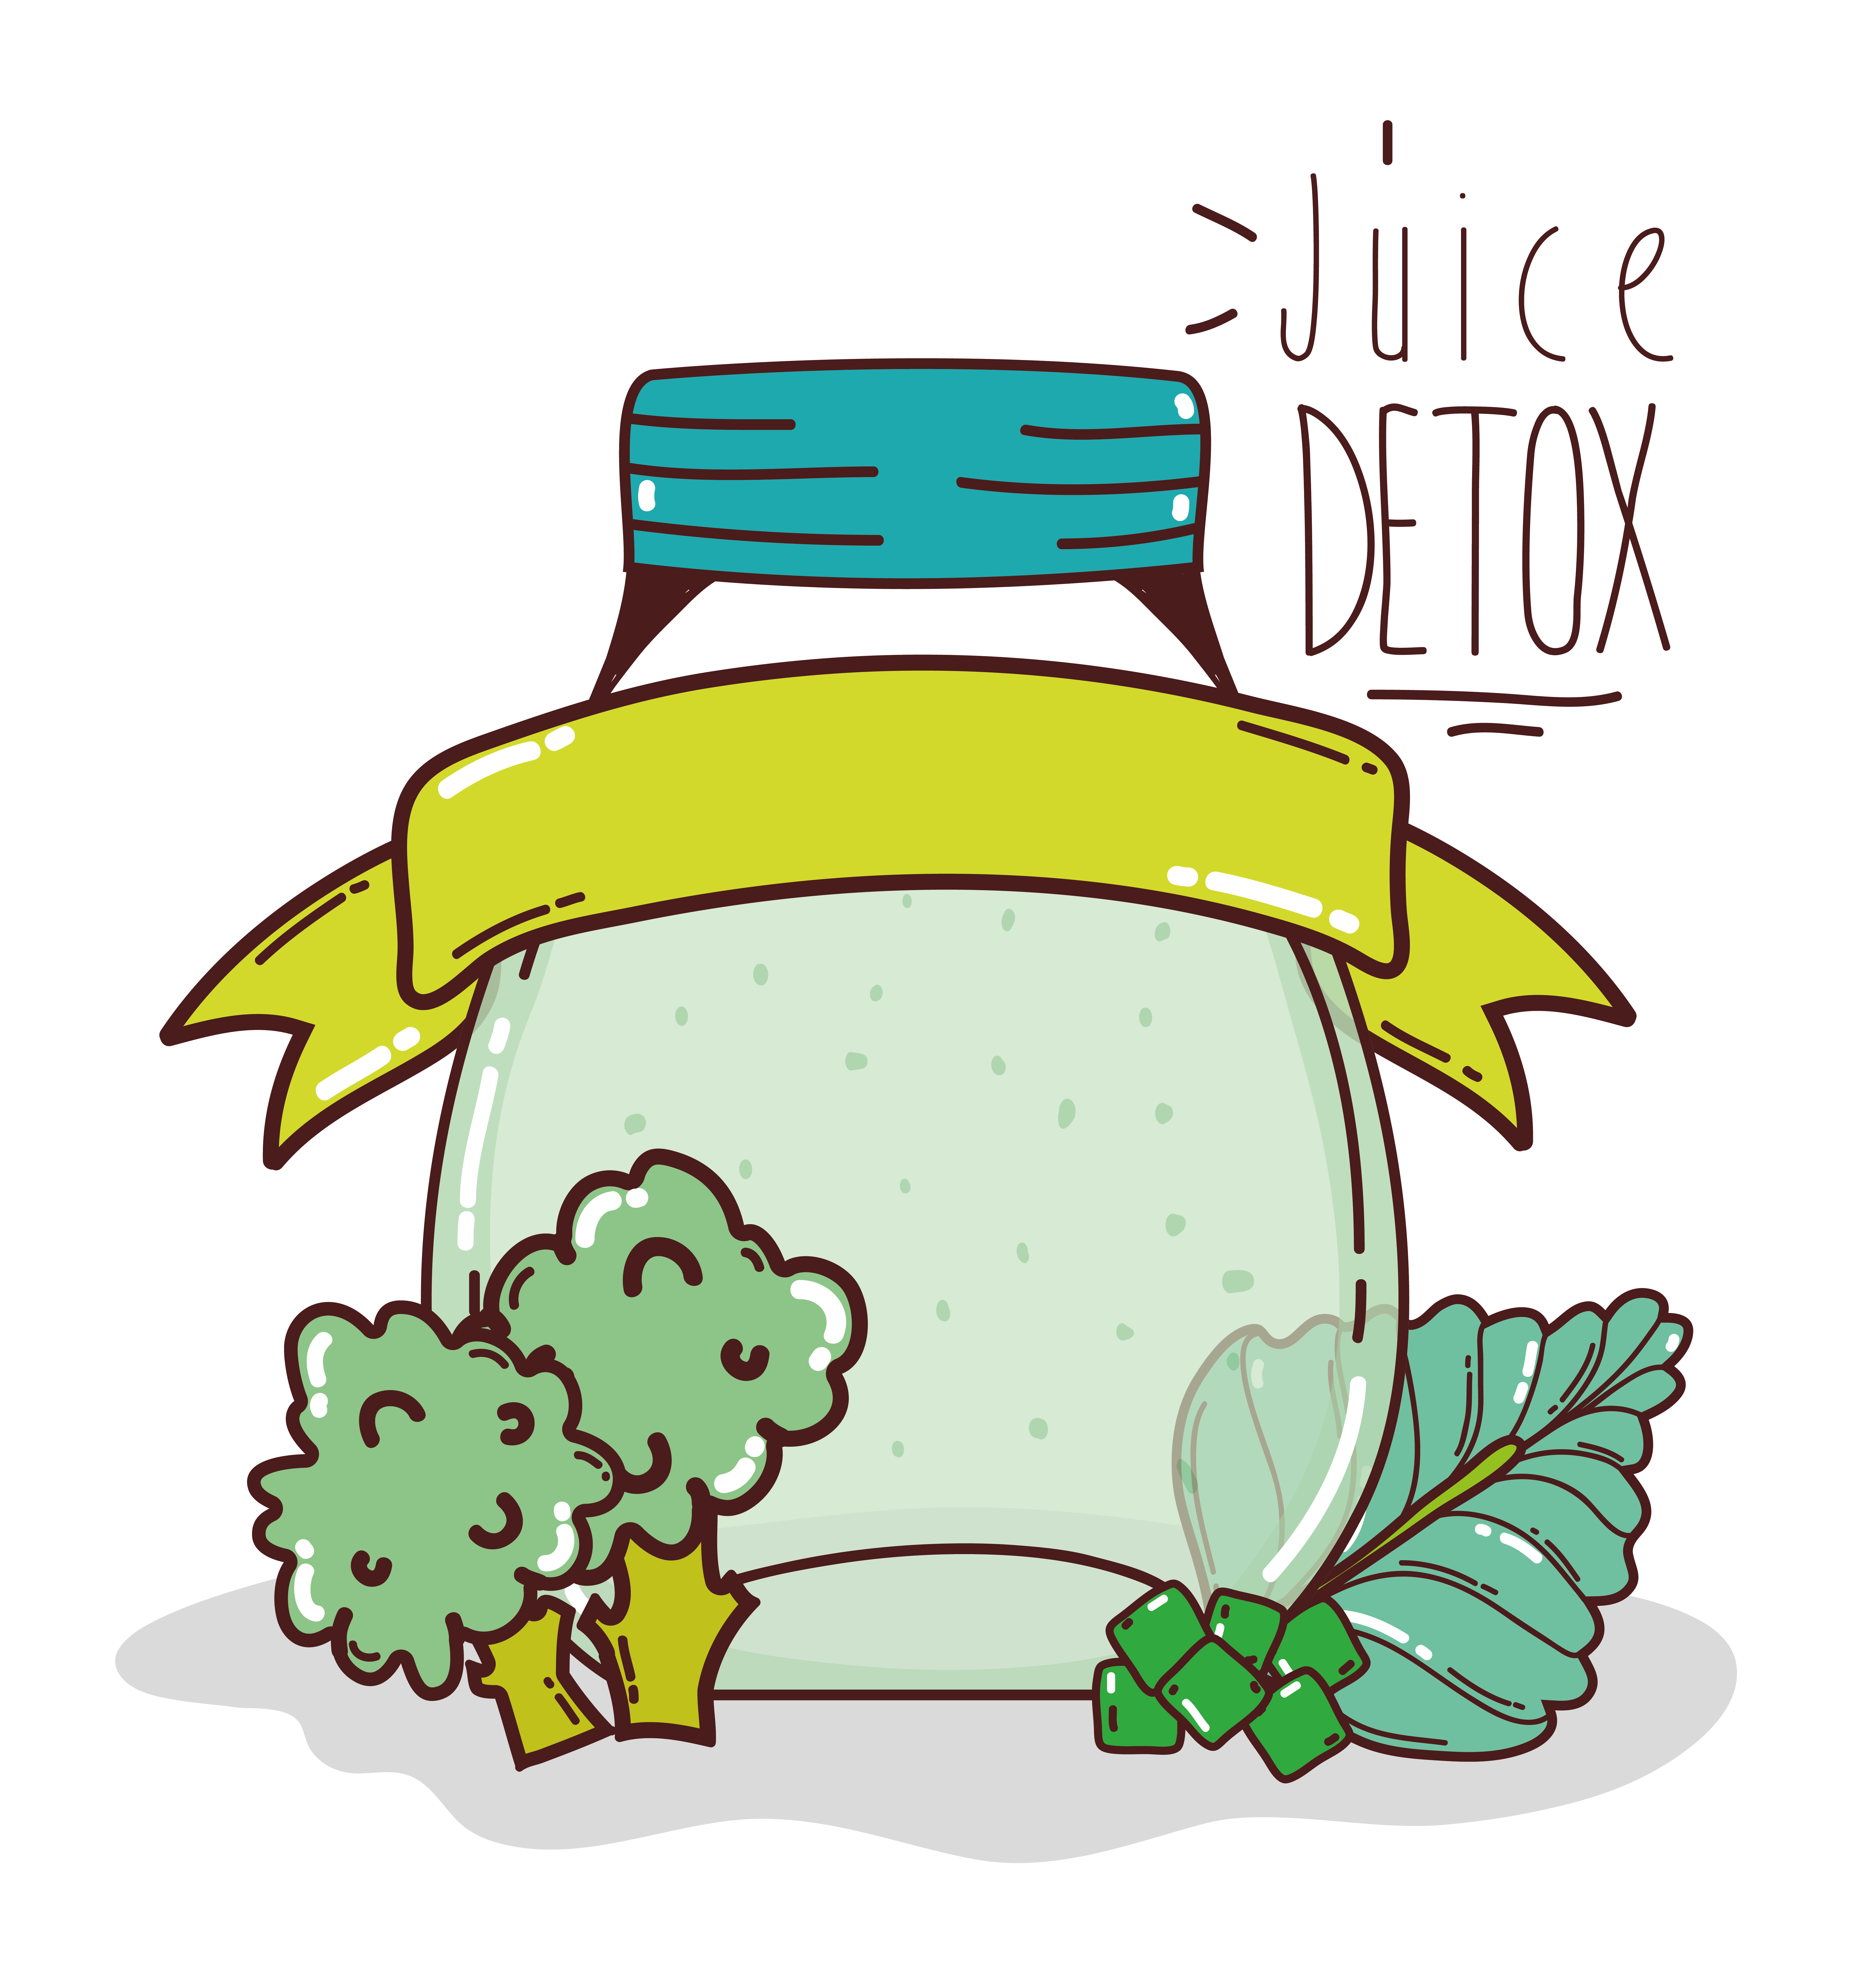 Detox Juice Cartoon Download Free Vectors Clipart Graphics Vector Art